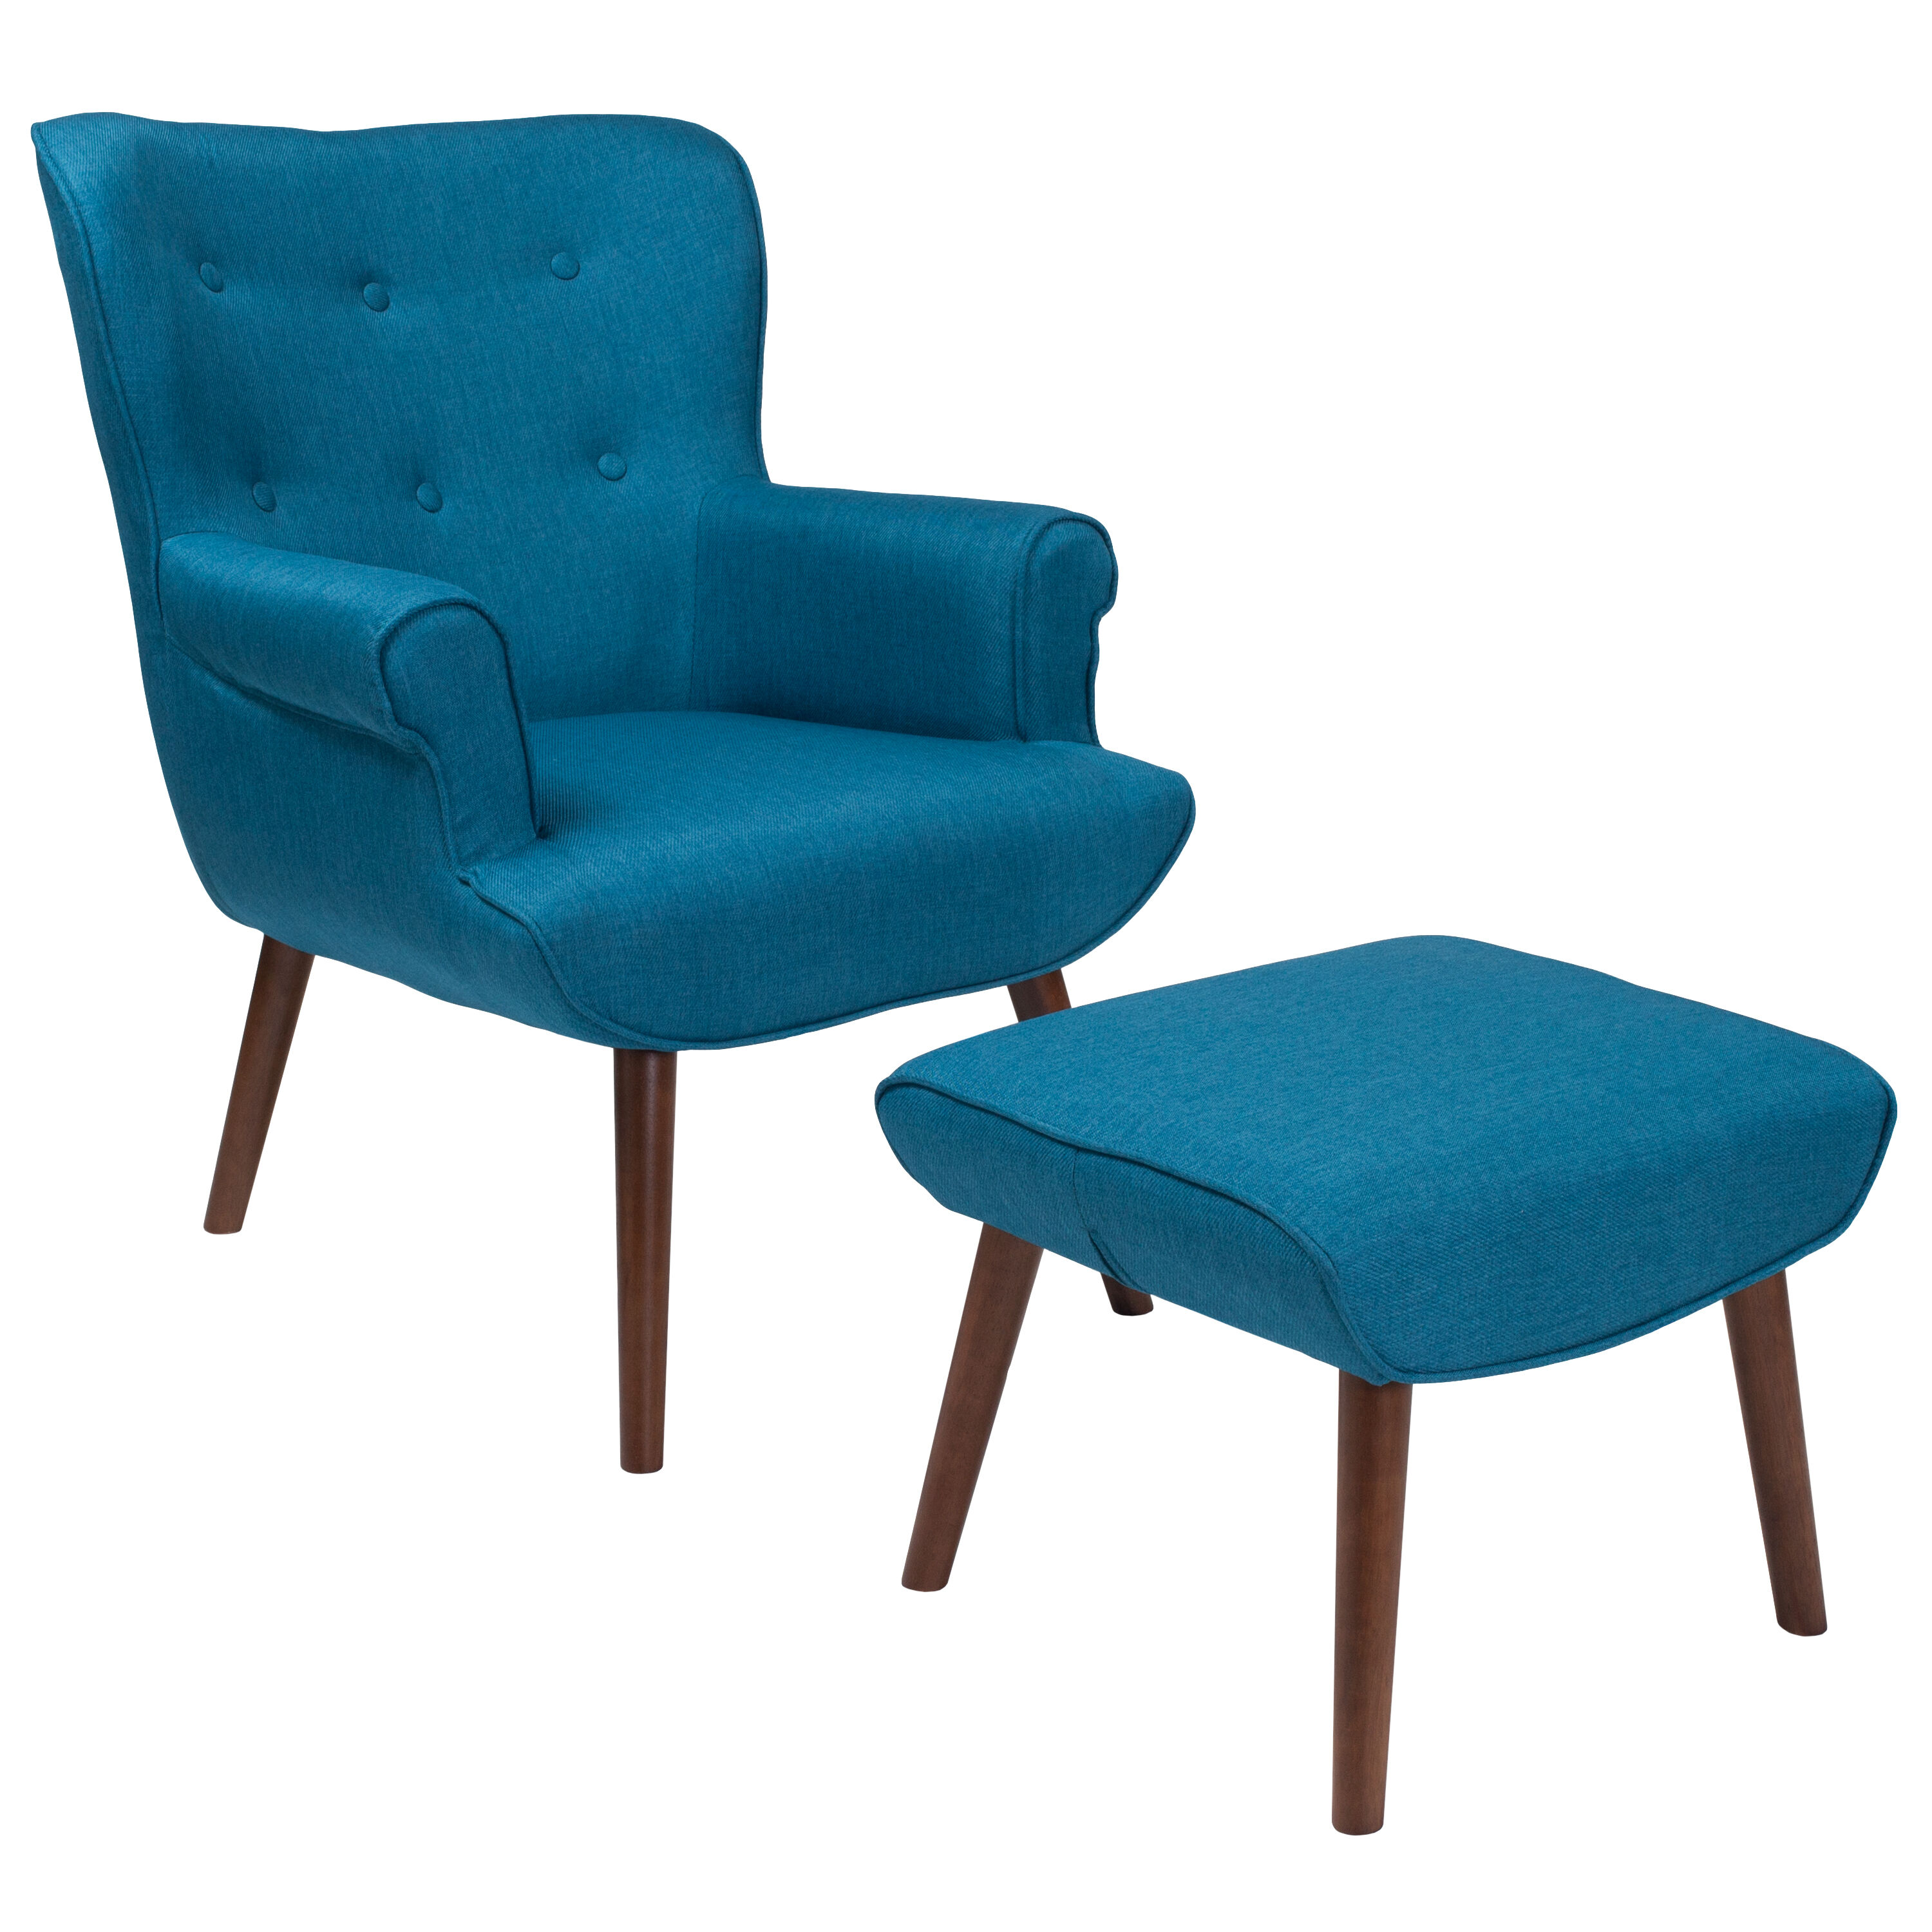 Teal Wingback Chair Bayton Upholstered Wingback Chair With Ottoman In Blue Fabric